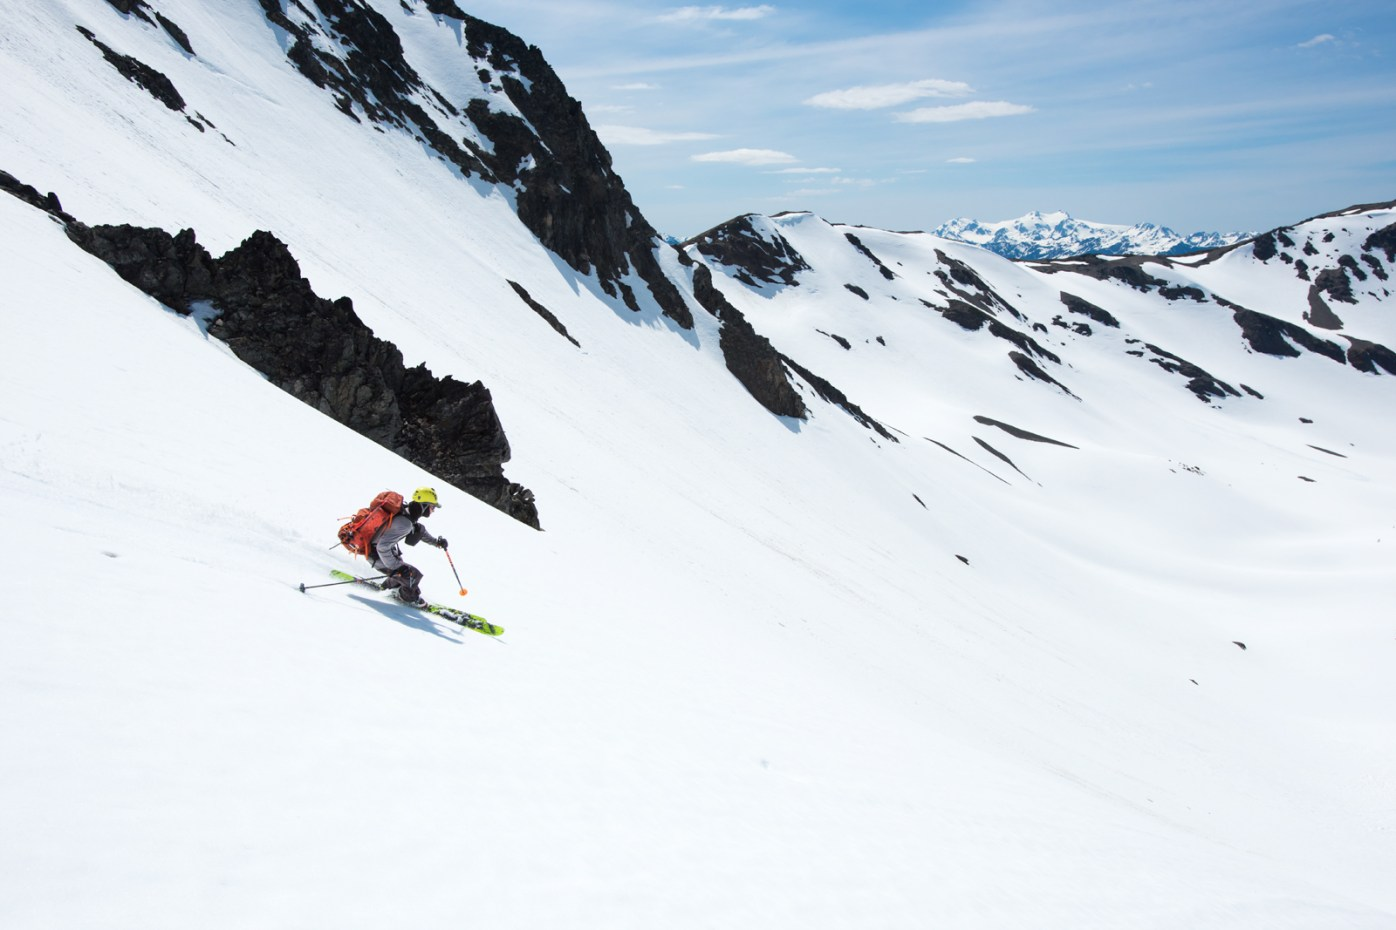 Skiing on the Cameron Glacier